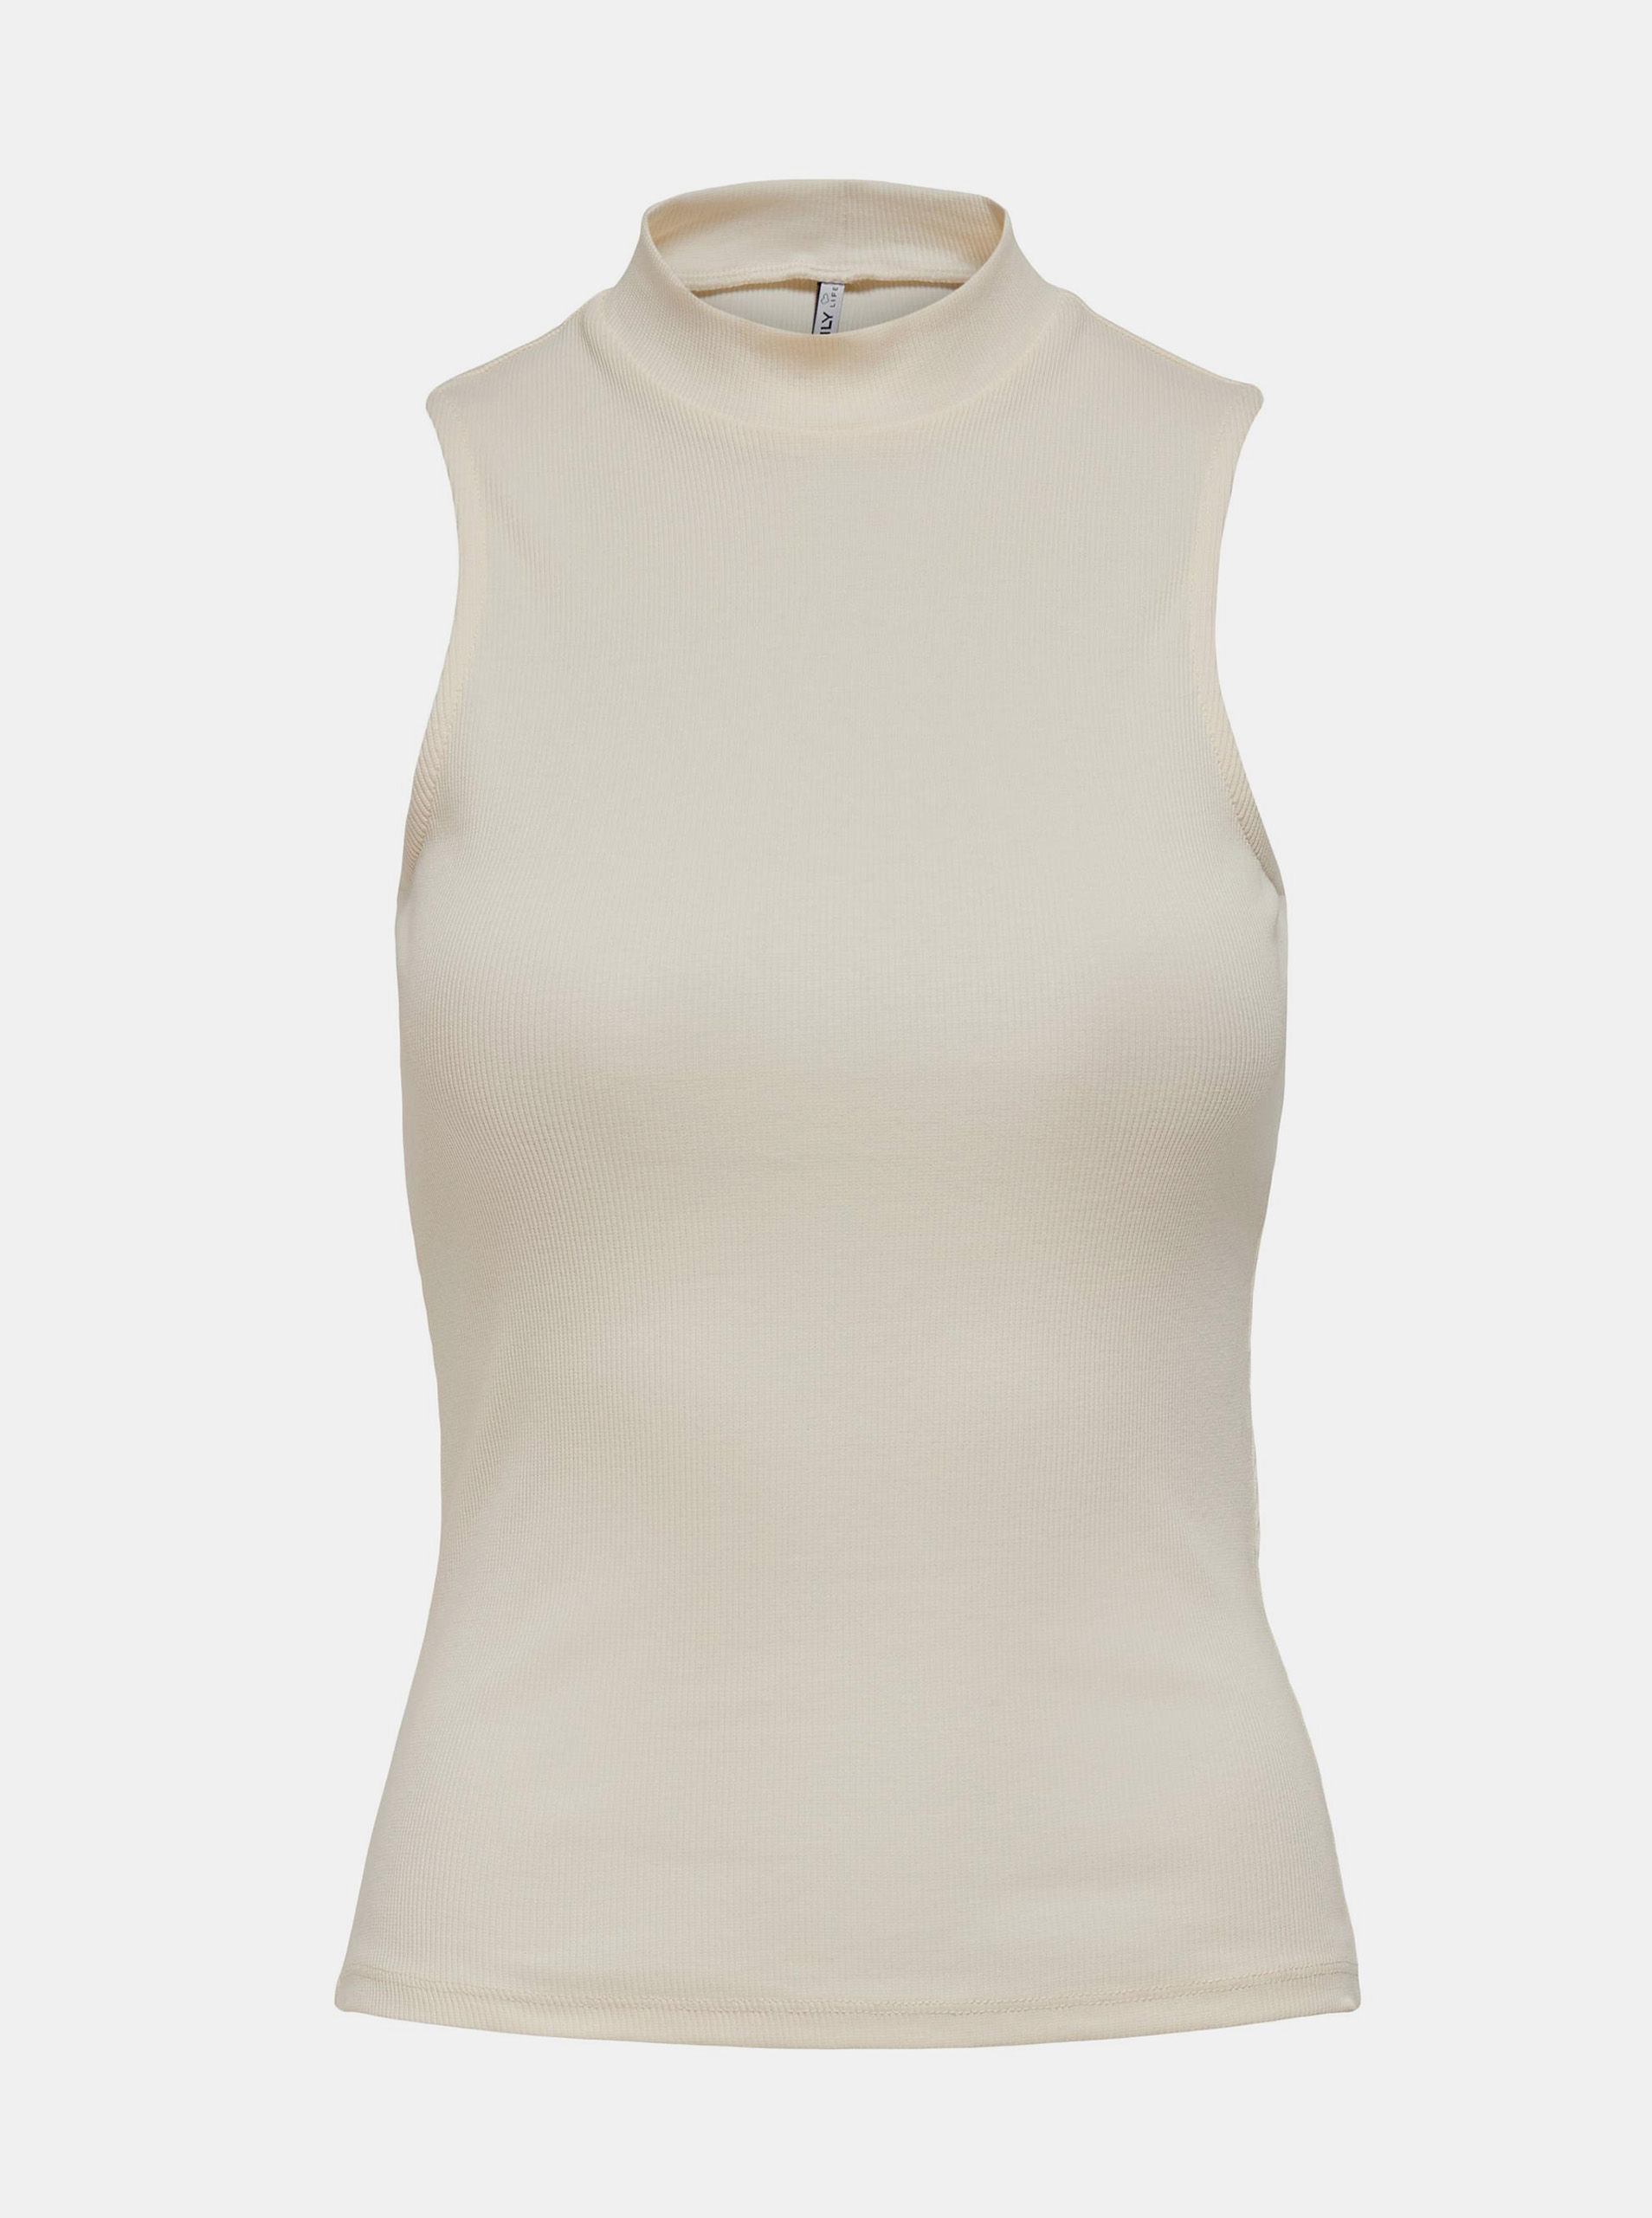 Only crema top